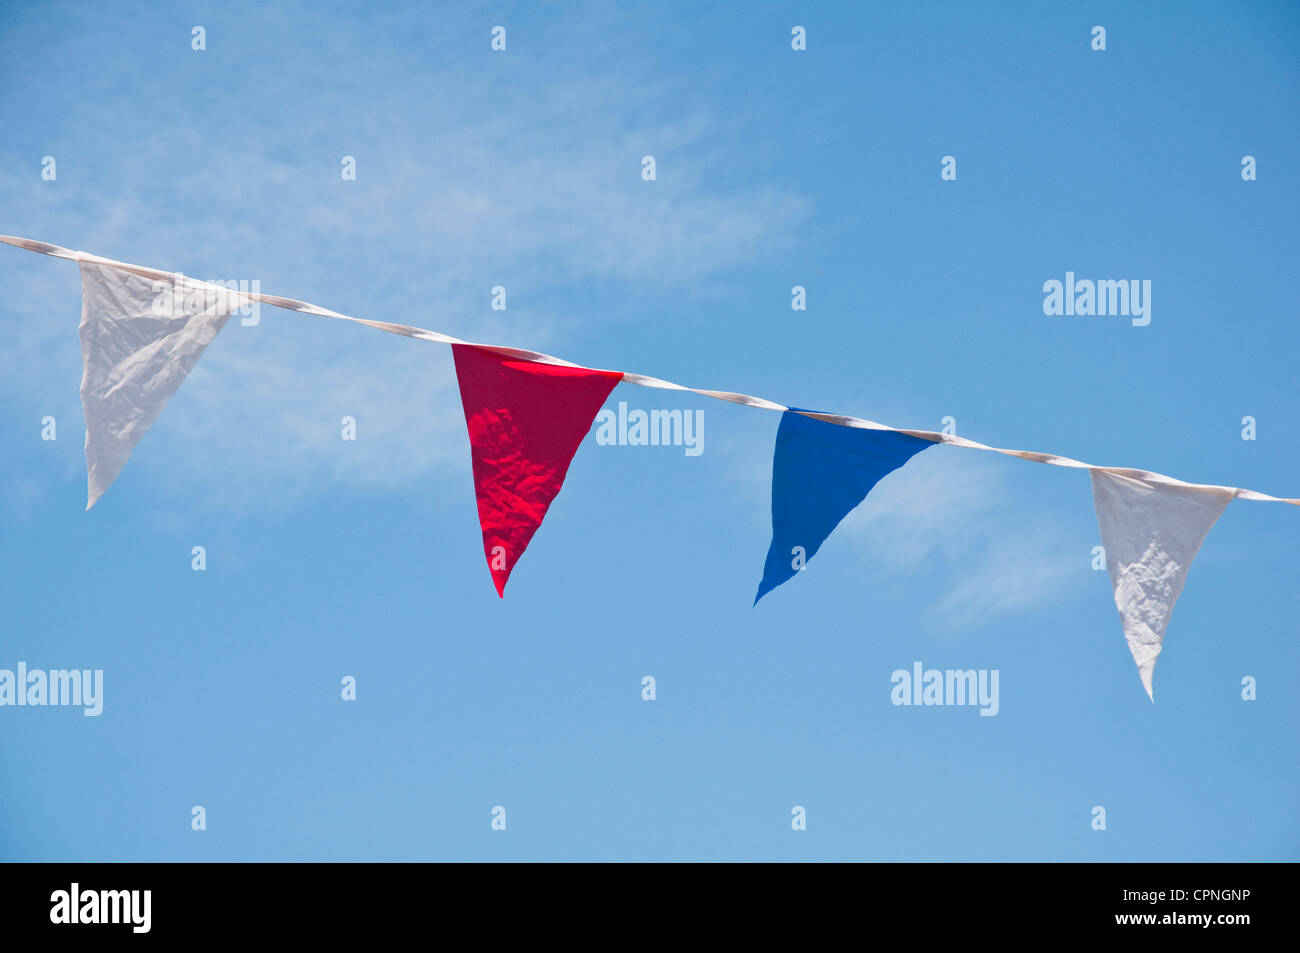 Bunting flags - red white and blue - against a blue sky. - Stock Image